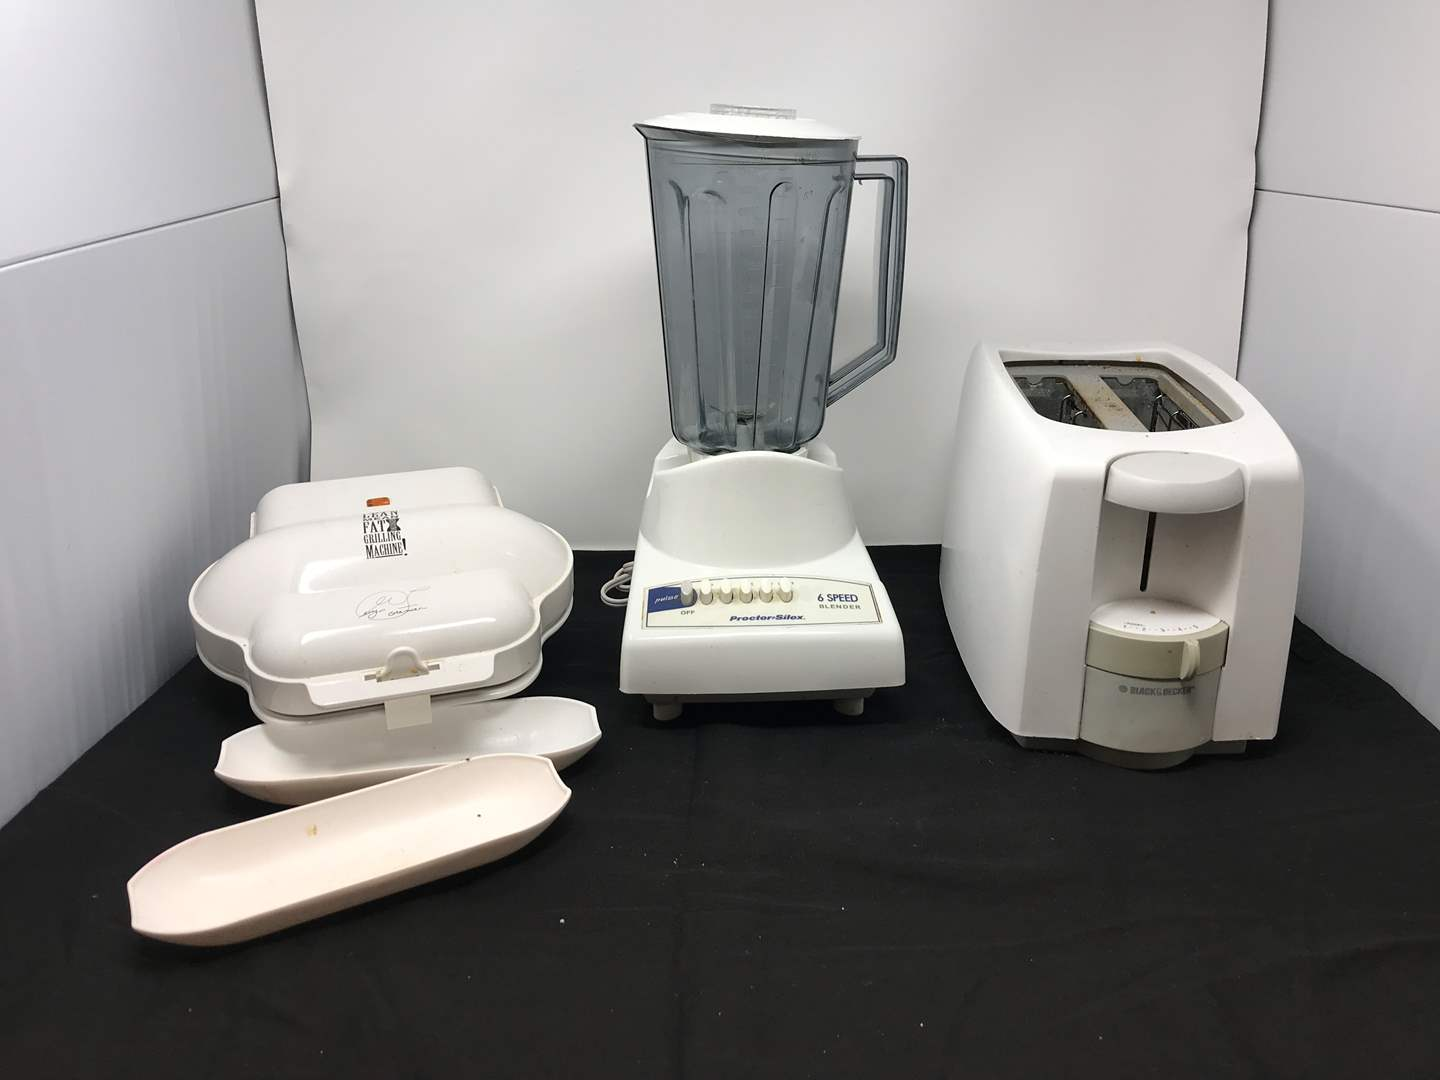 Lot # 89 - Used Items: Small George Foreman, Black & Decker Toaster & Blender (main image)